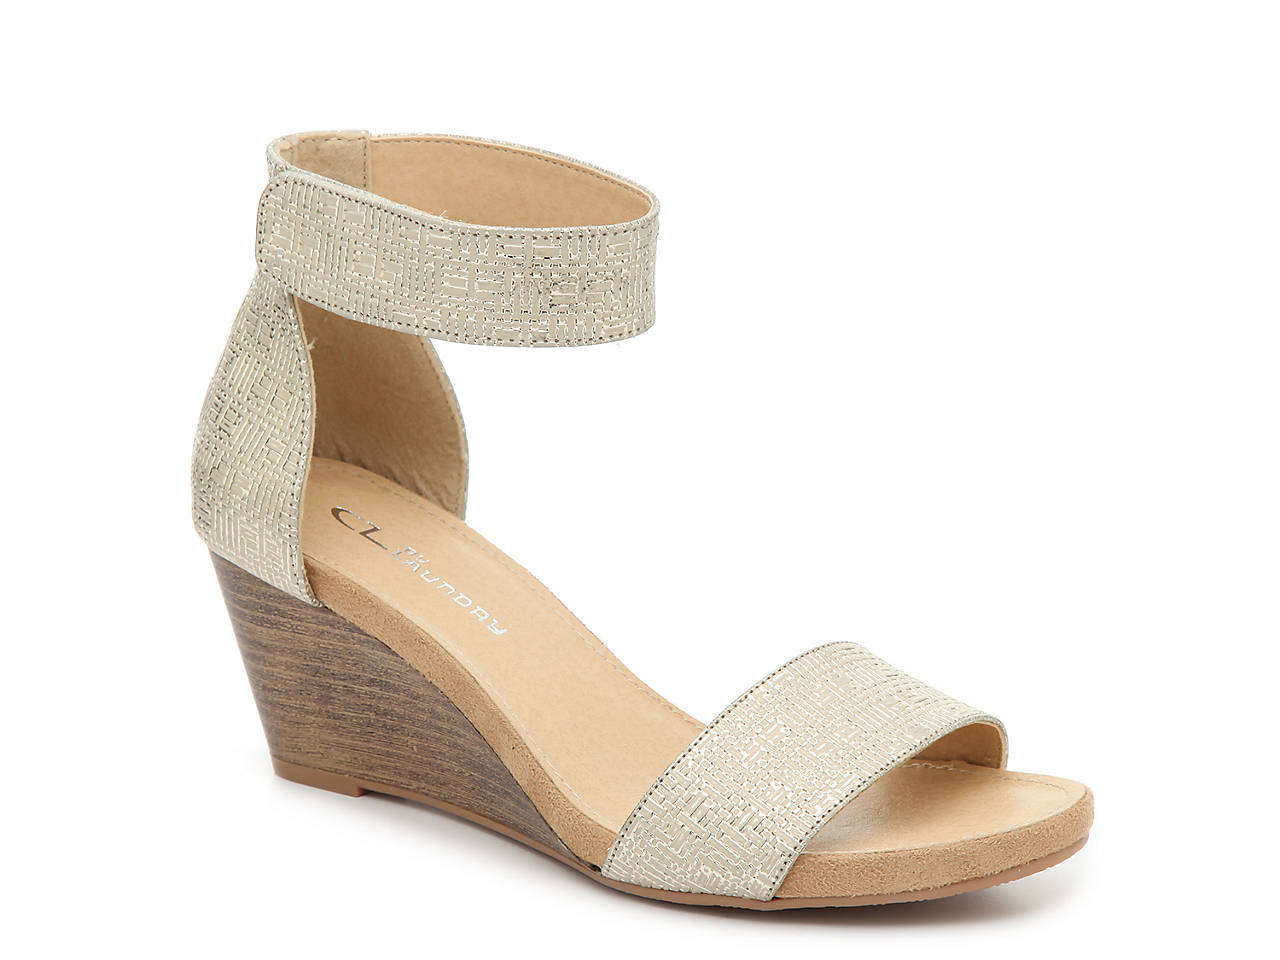 27f007d29 CL by Laundry Hot Zone Wedge Sandal Women s Shoes